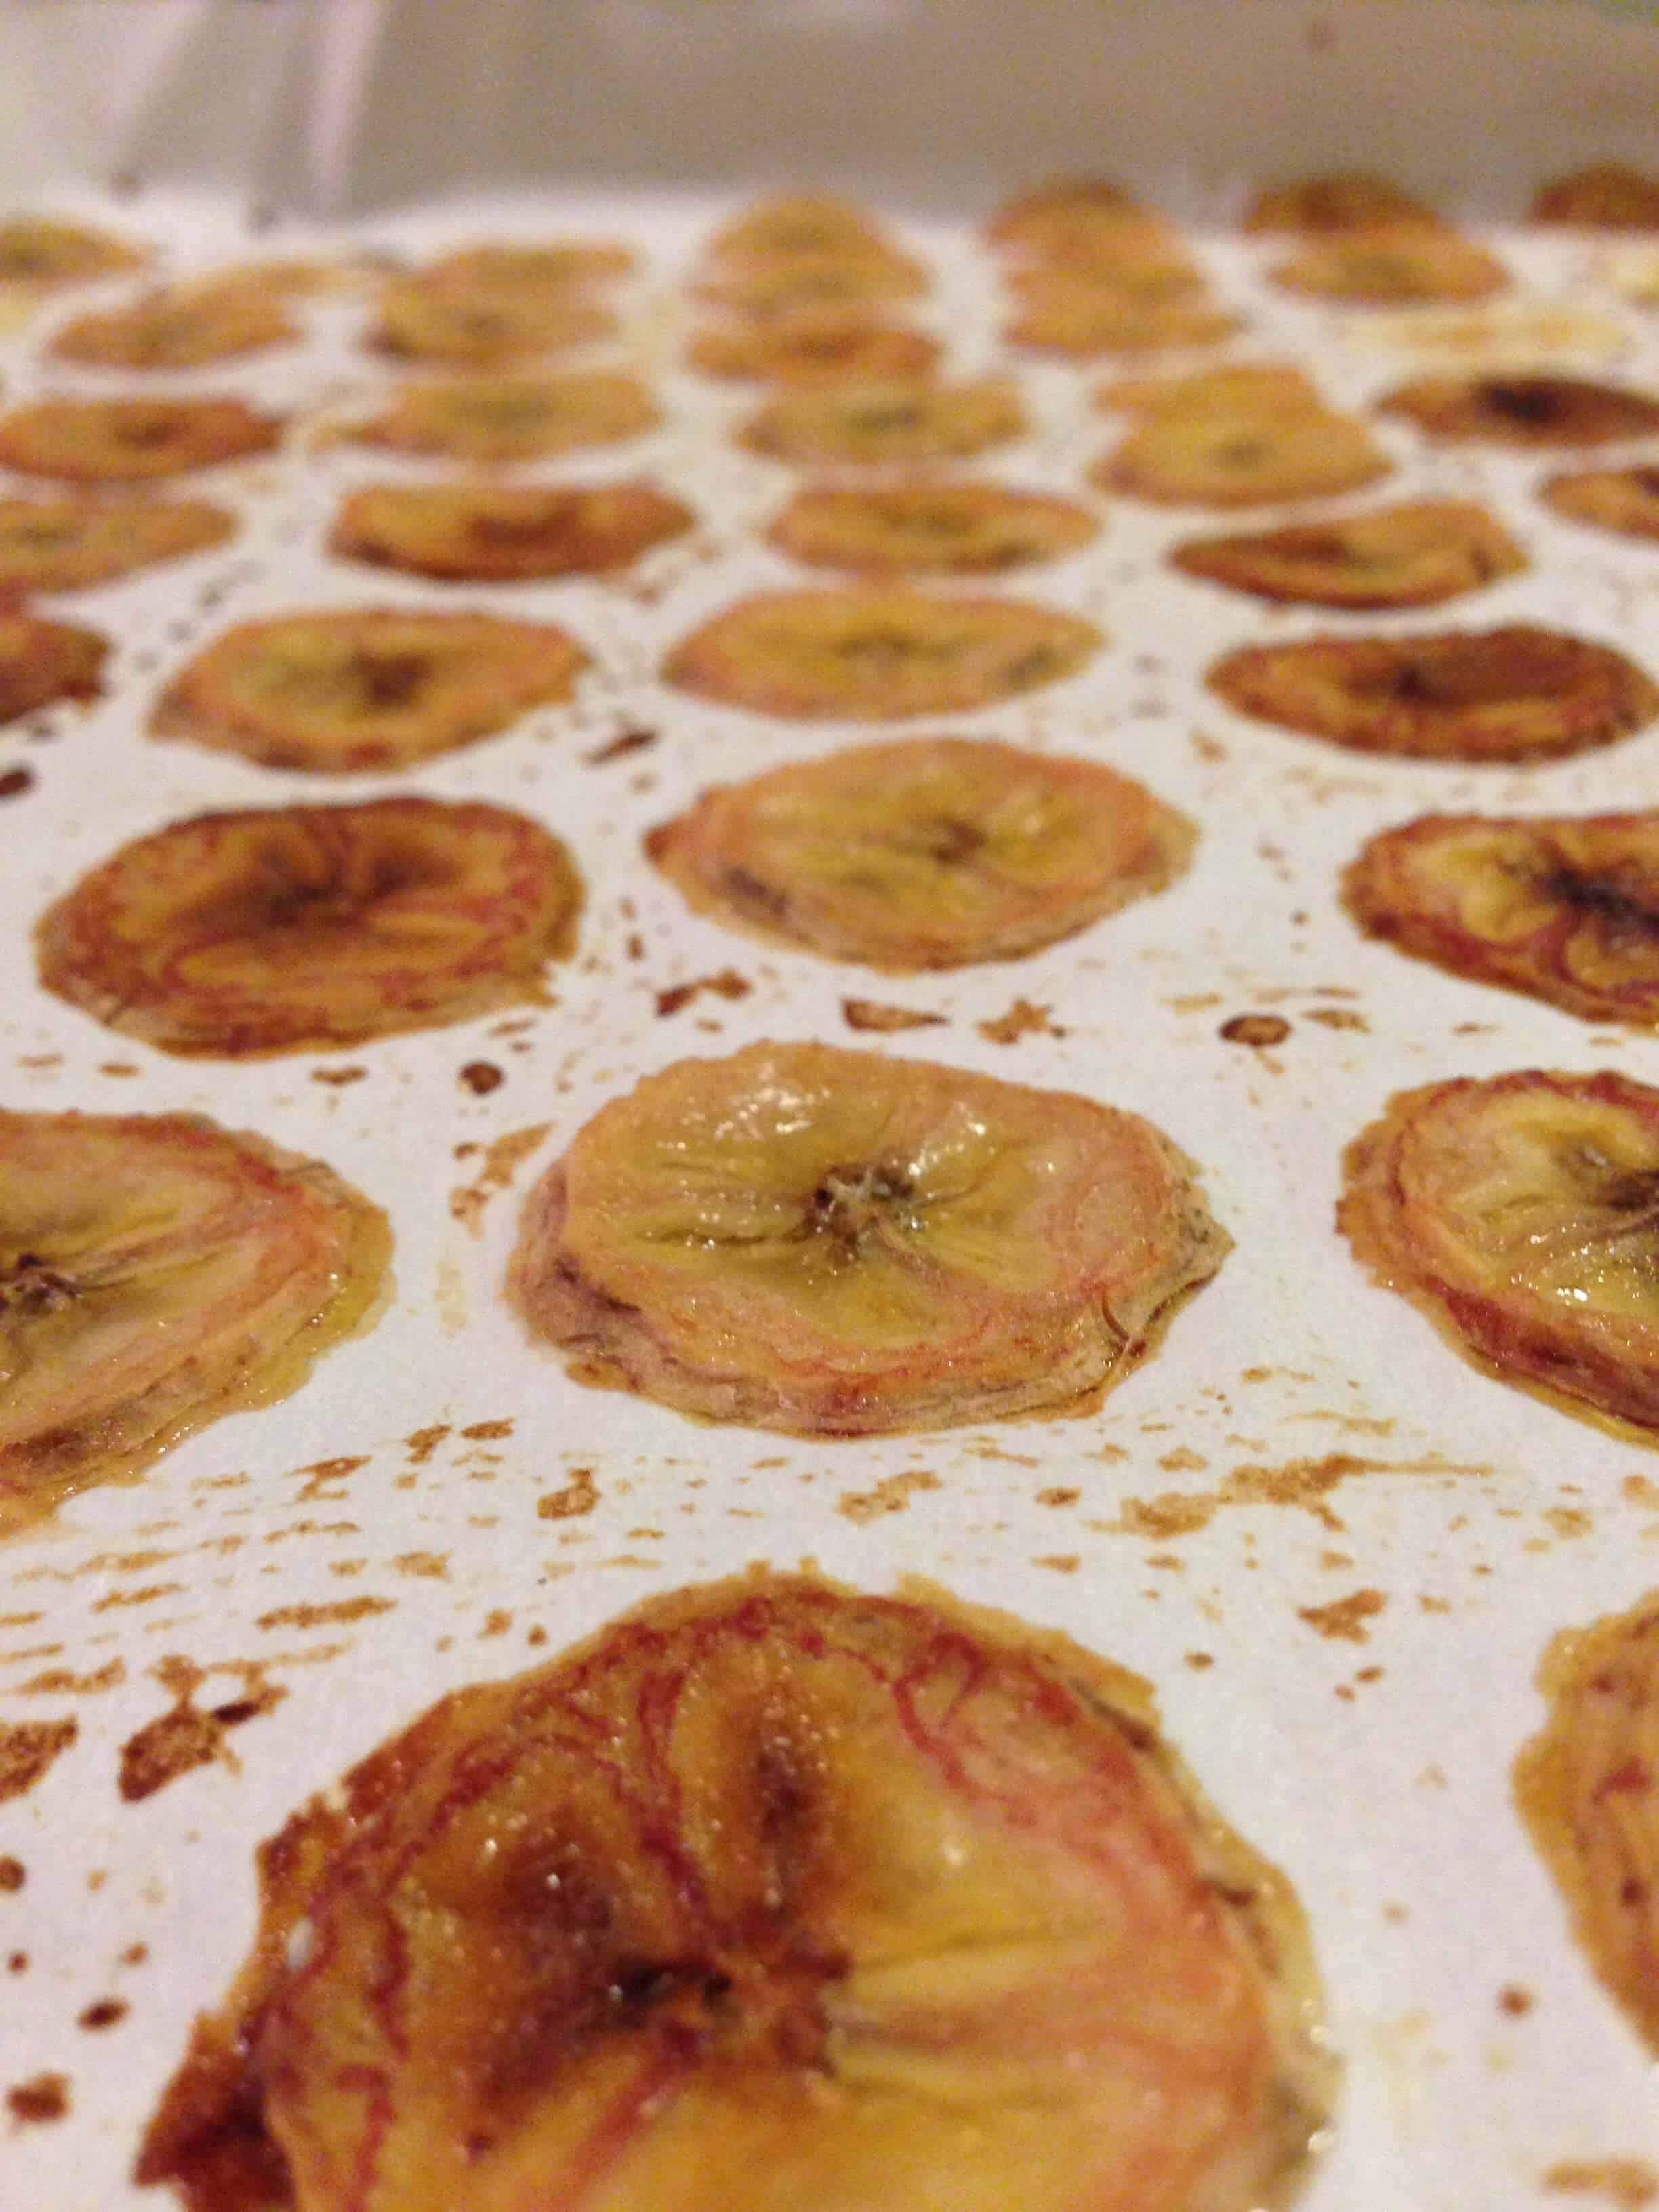 image of banana chips baked in an oven